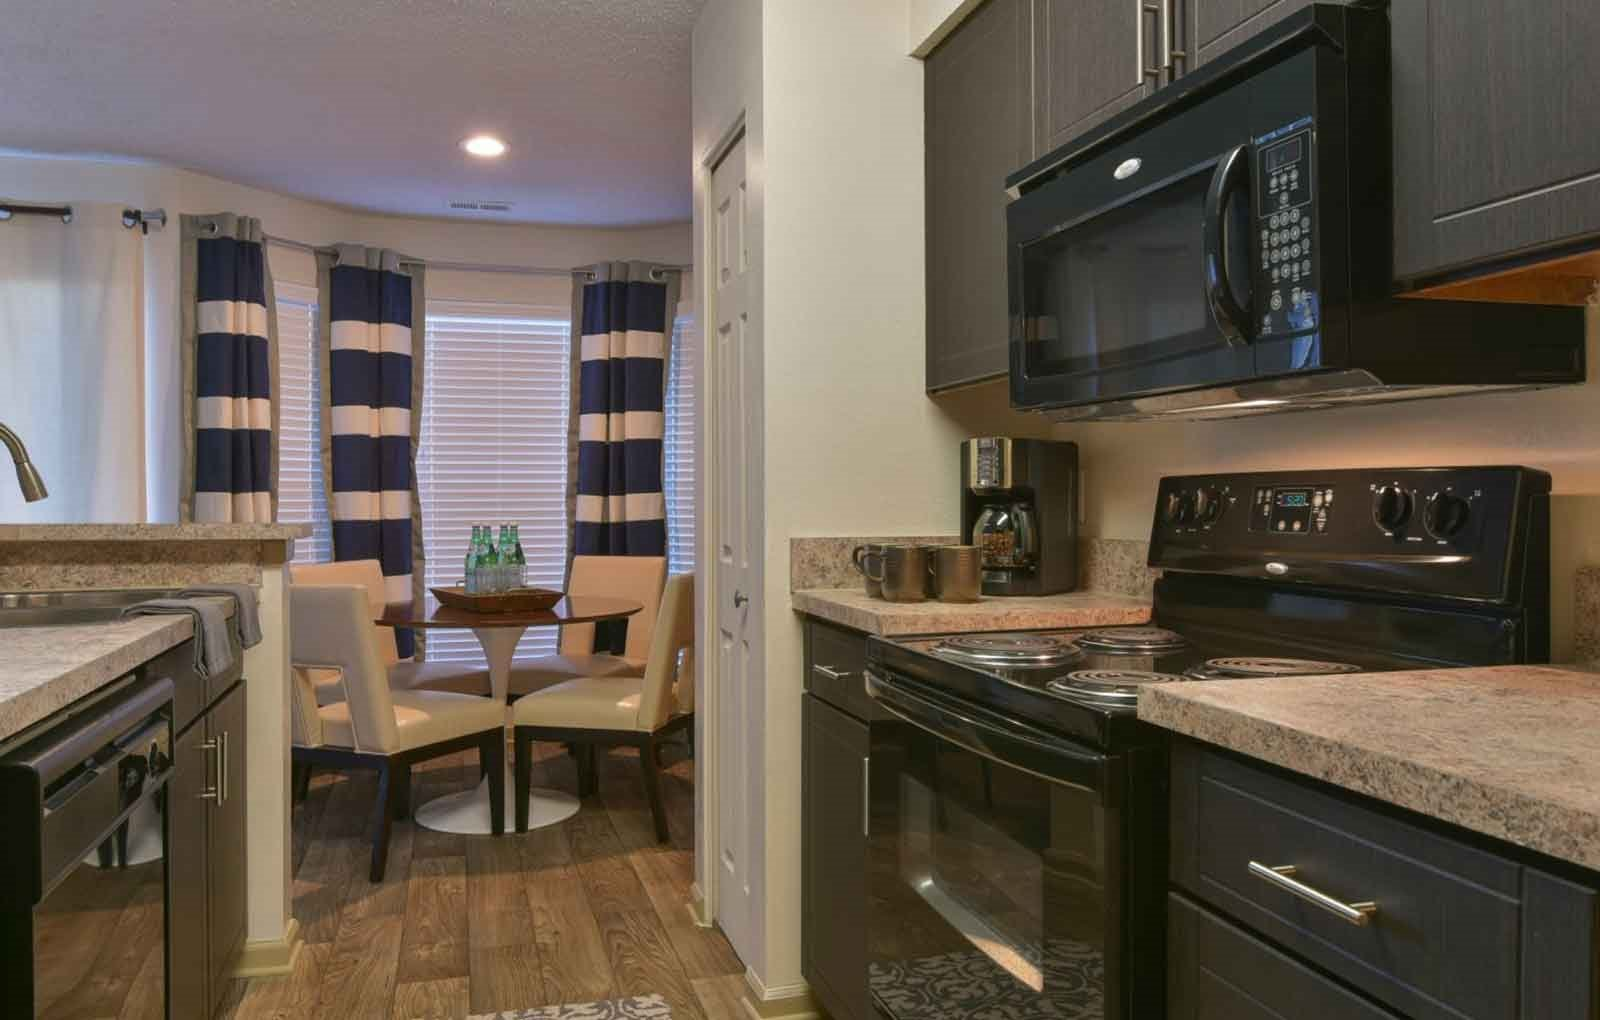 Reafield village apartments apartments in charlotte nc - 3 bedroom apartments charlotte nc ...